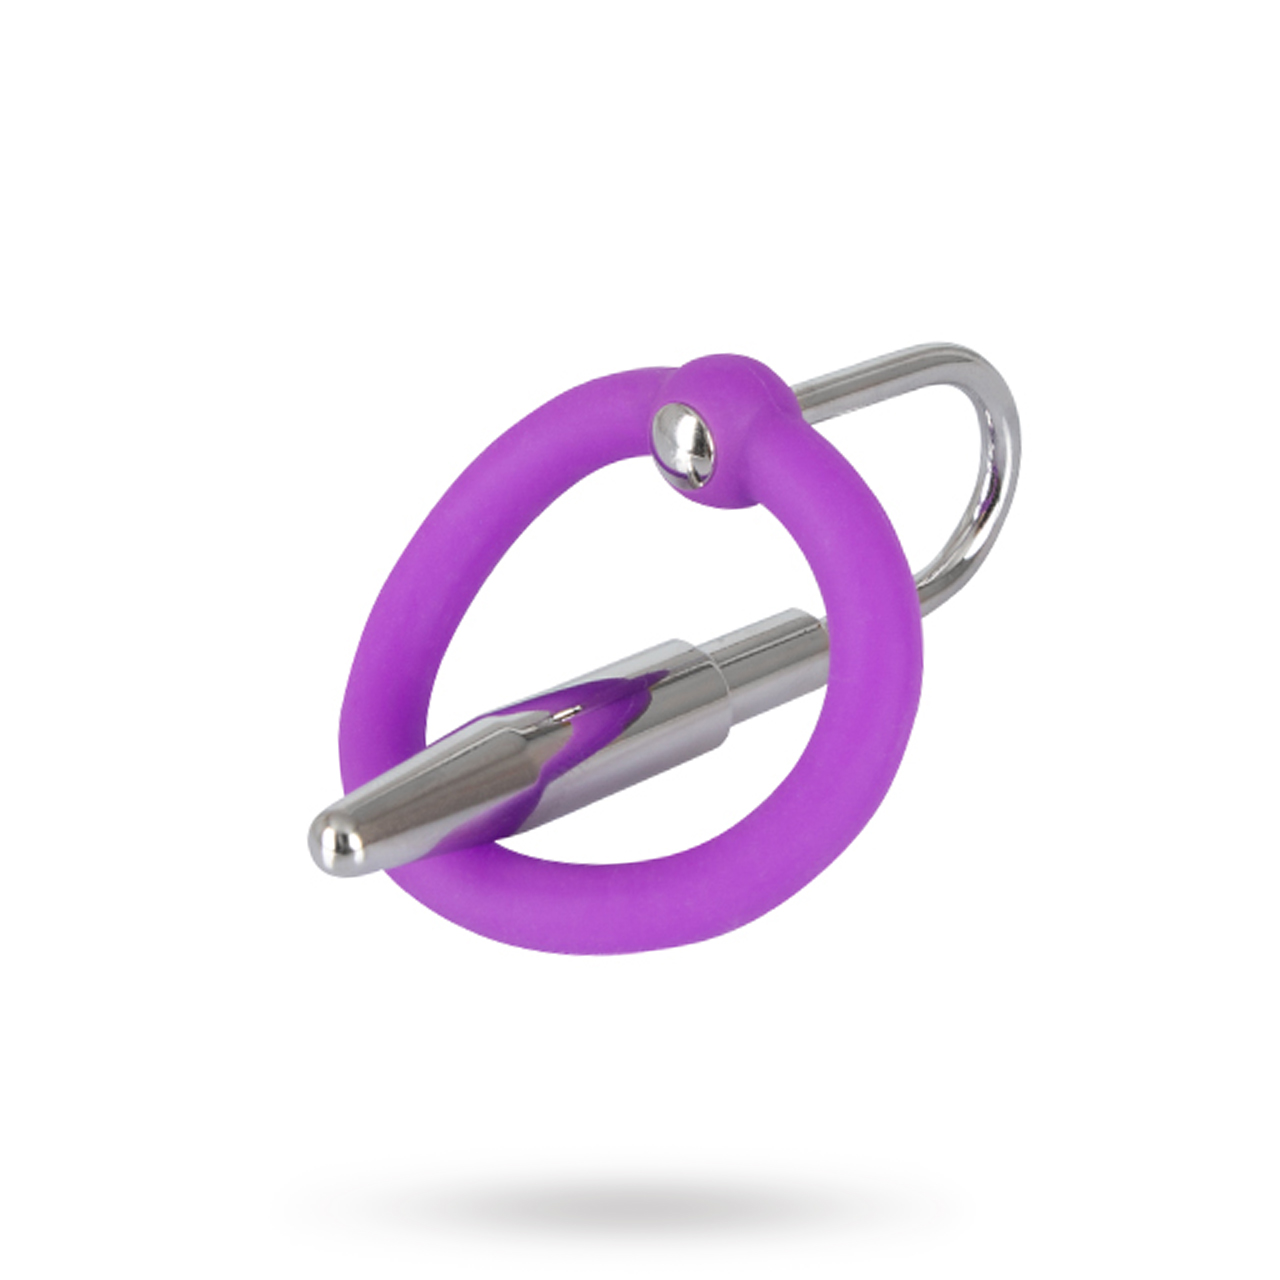 Glans Ring and Dilator